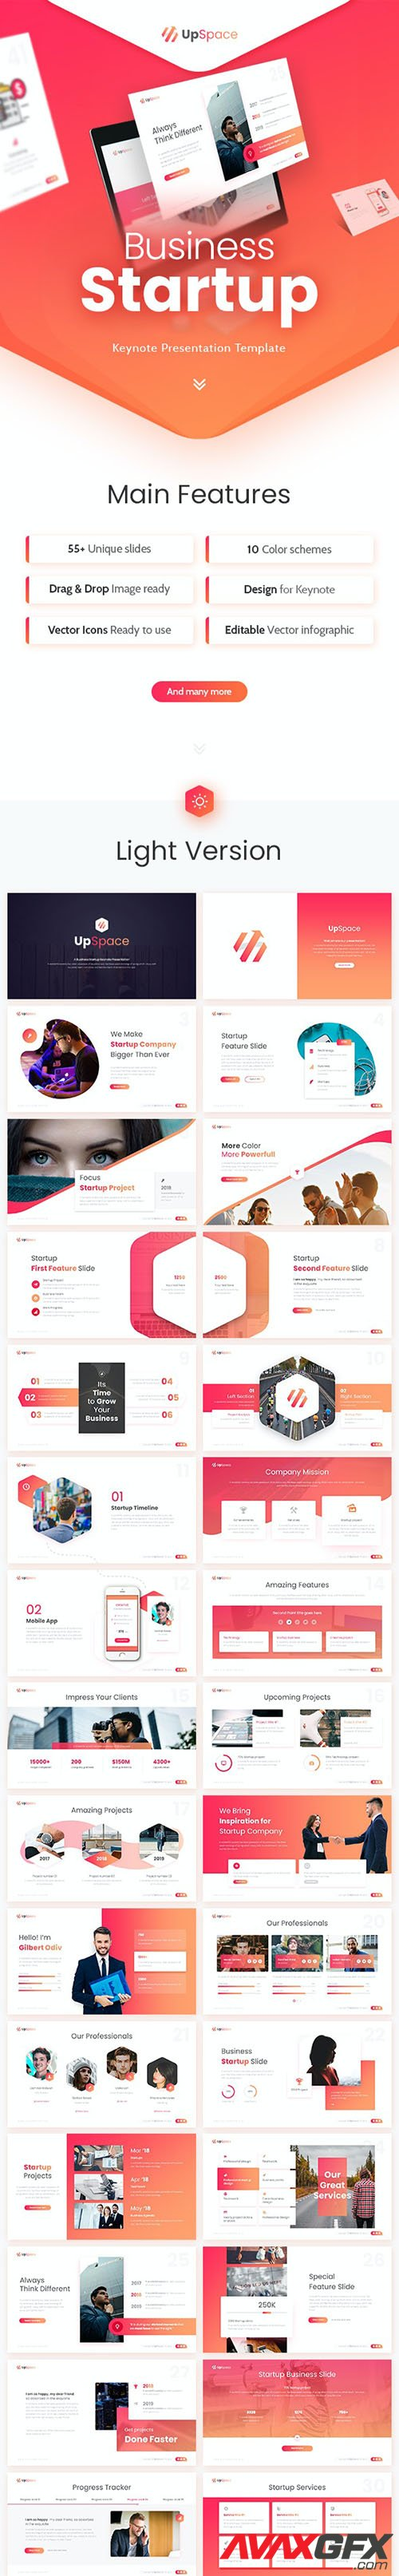 Upspace Business Startup Keynote Presentation Template